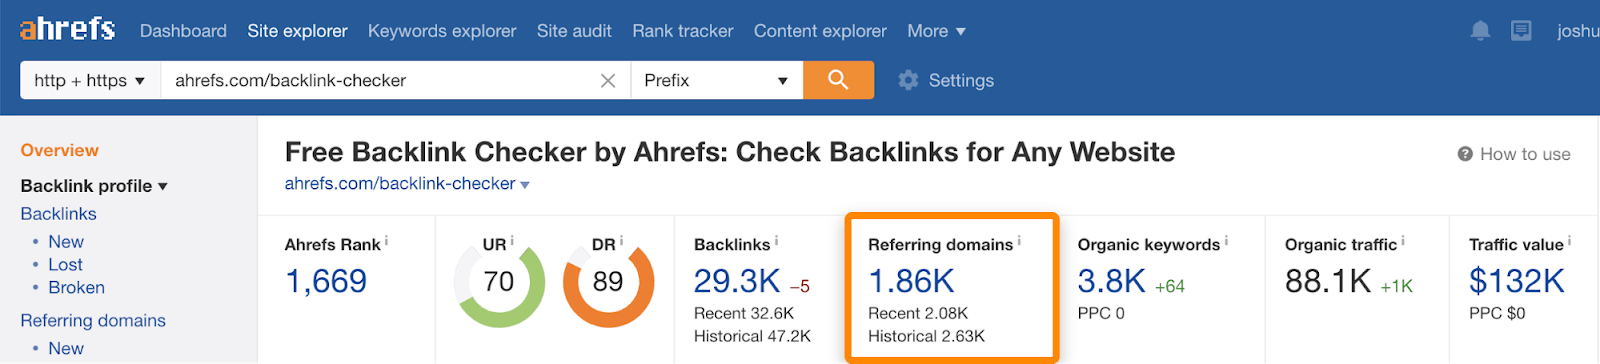 7 free backlink checker referring domains